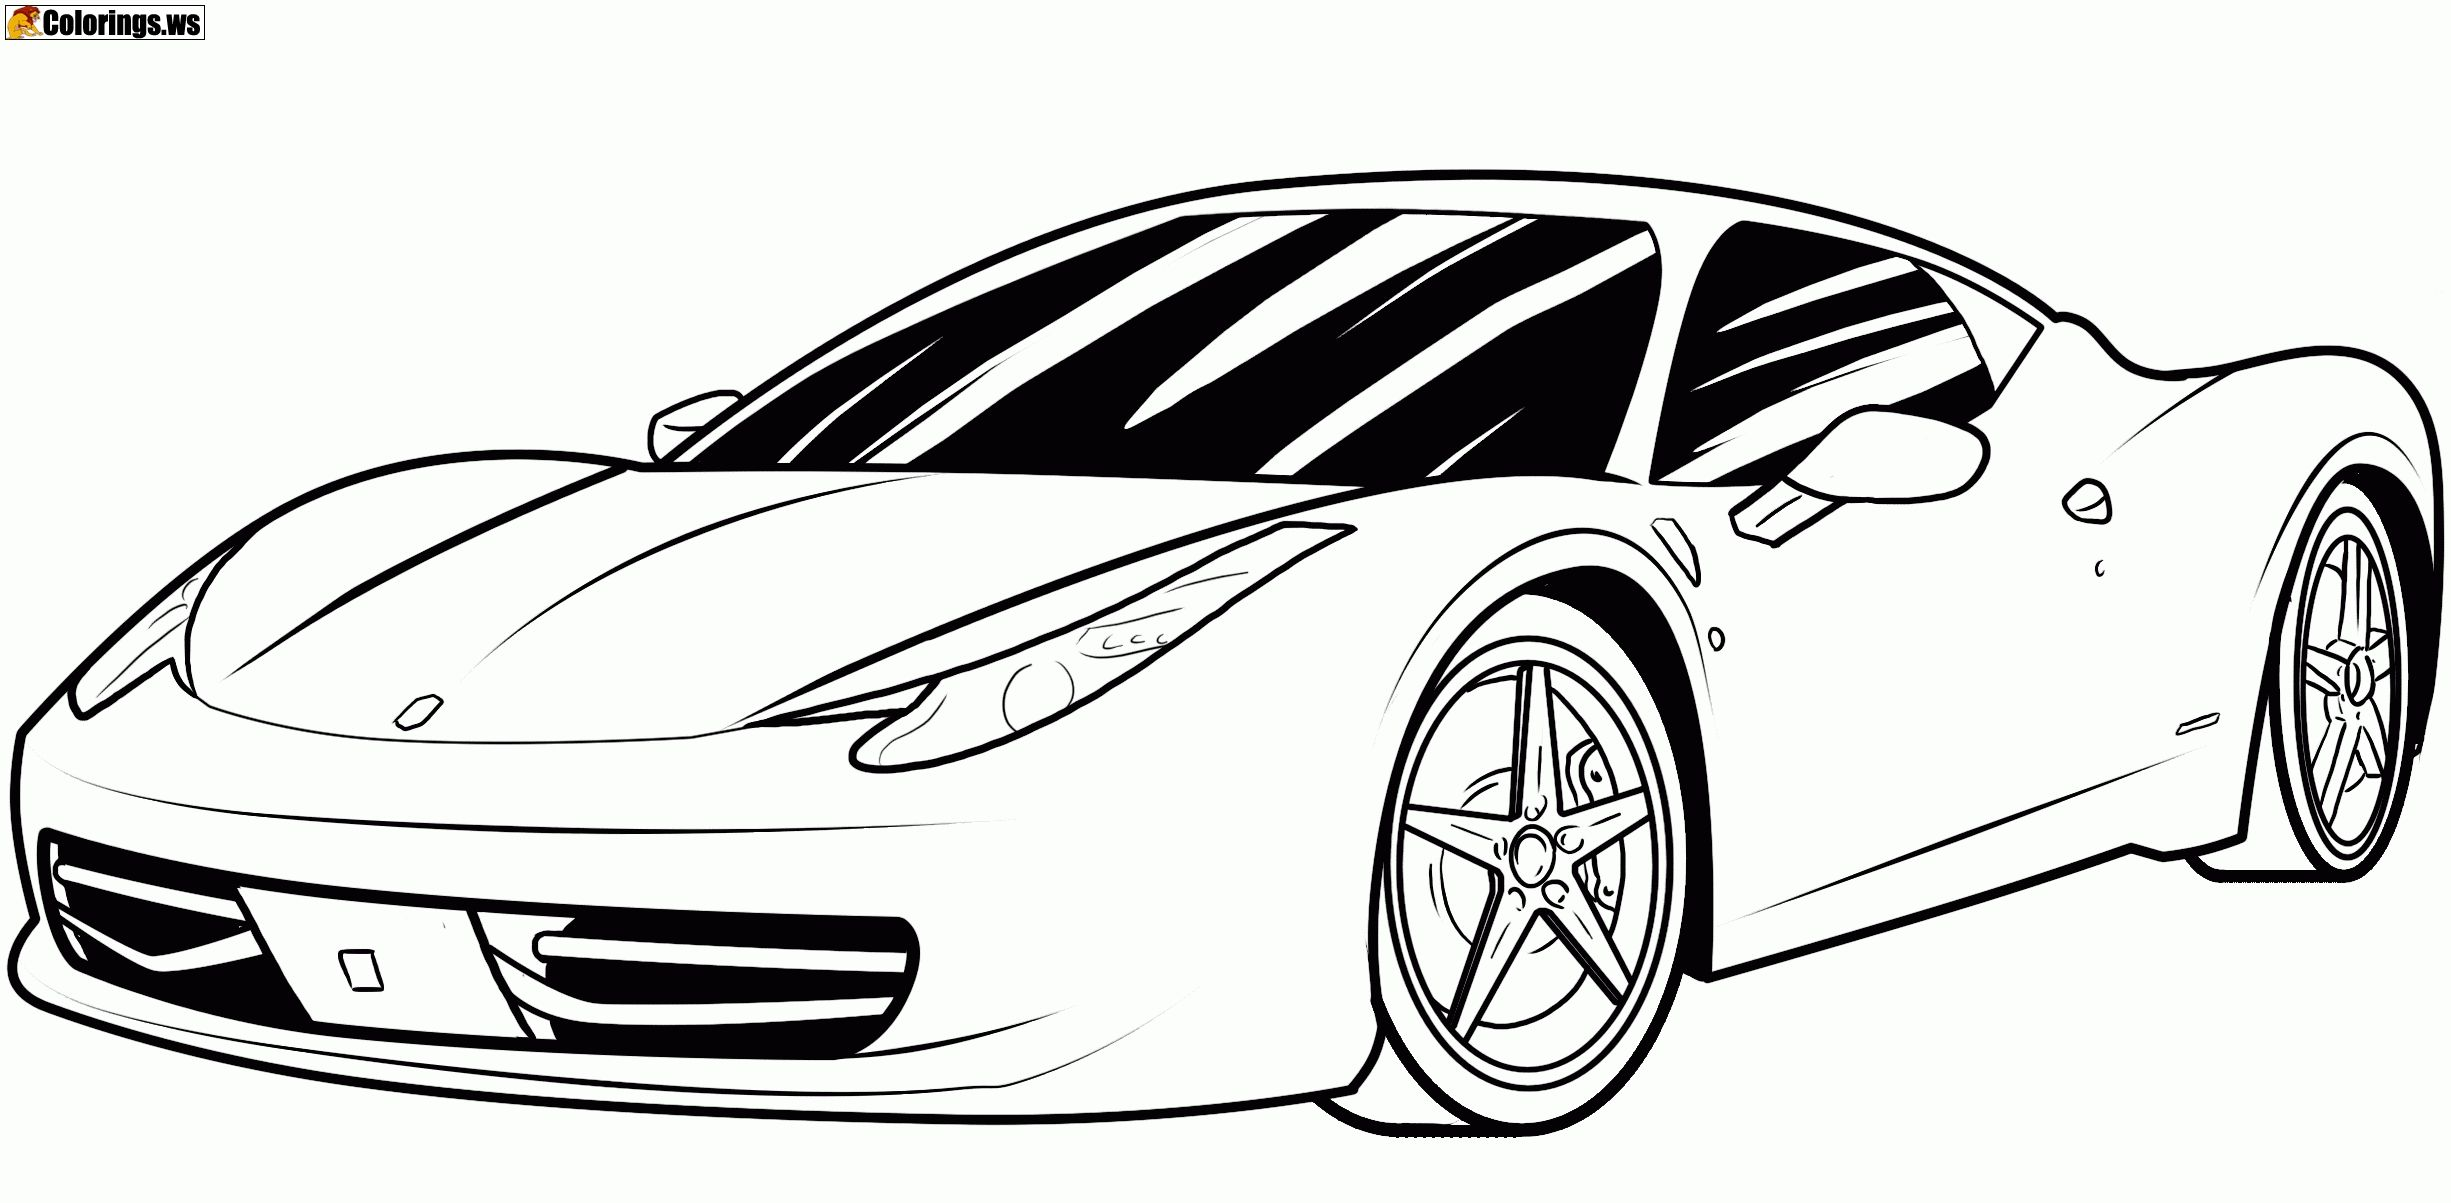 Ferrari Car Coloring Pages Car Coloring Pages In The Past The Electrics Were A Relativel Cars Coloring Pages Race Car Coloring Pages Sports Coloring Pages